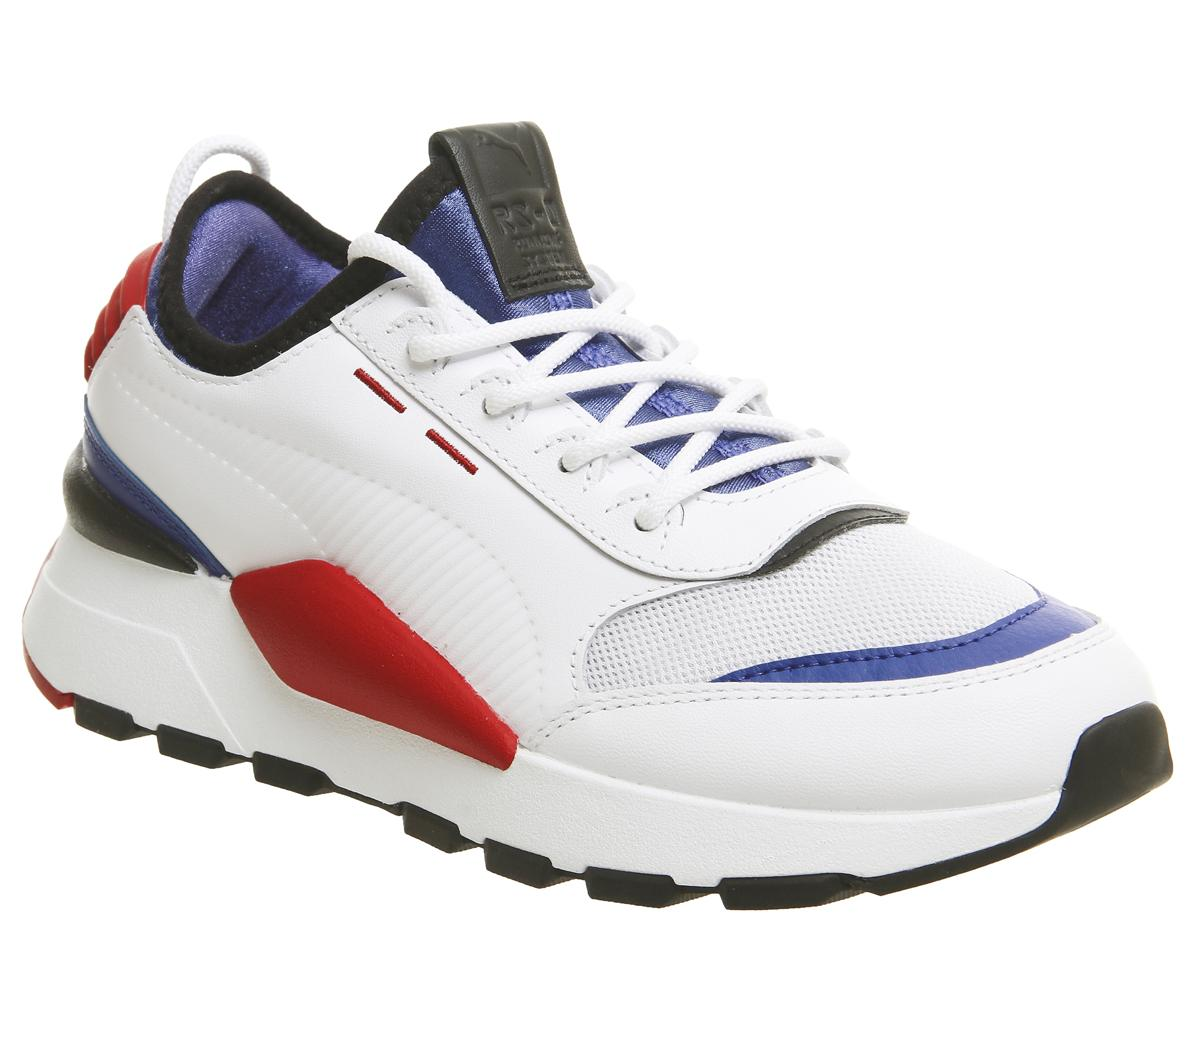 Puma Rs-0 Sound Trainers Puma White Blue Red - Sneaker damen